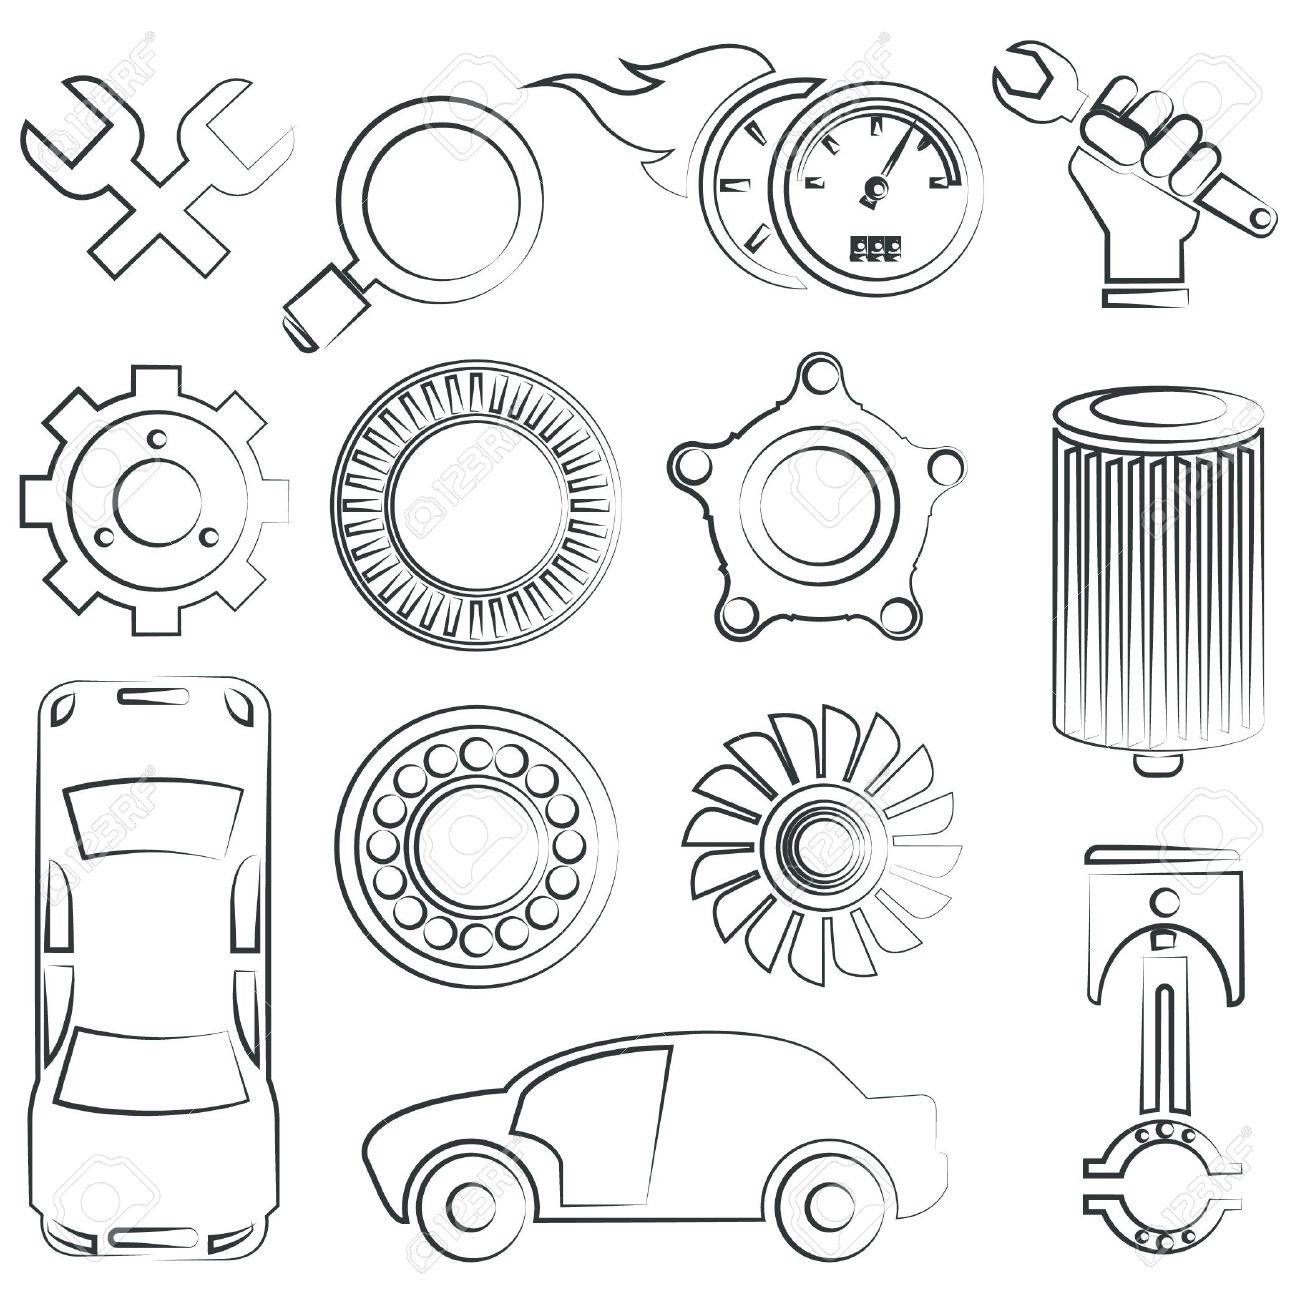 Delighted car parts drawing images electrical circuit diagram car parts drawing dolgular pooptronica